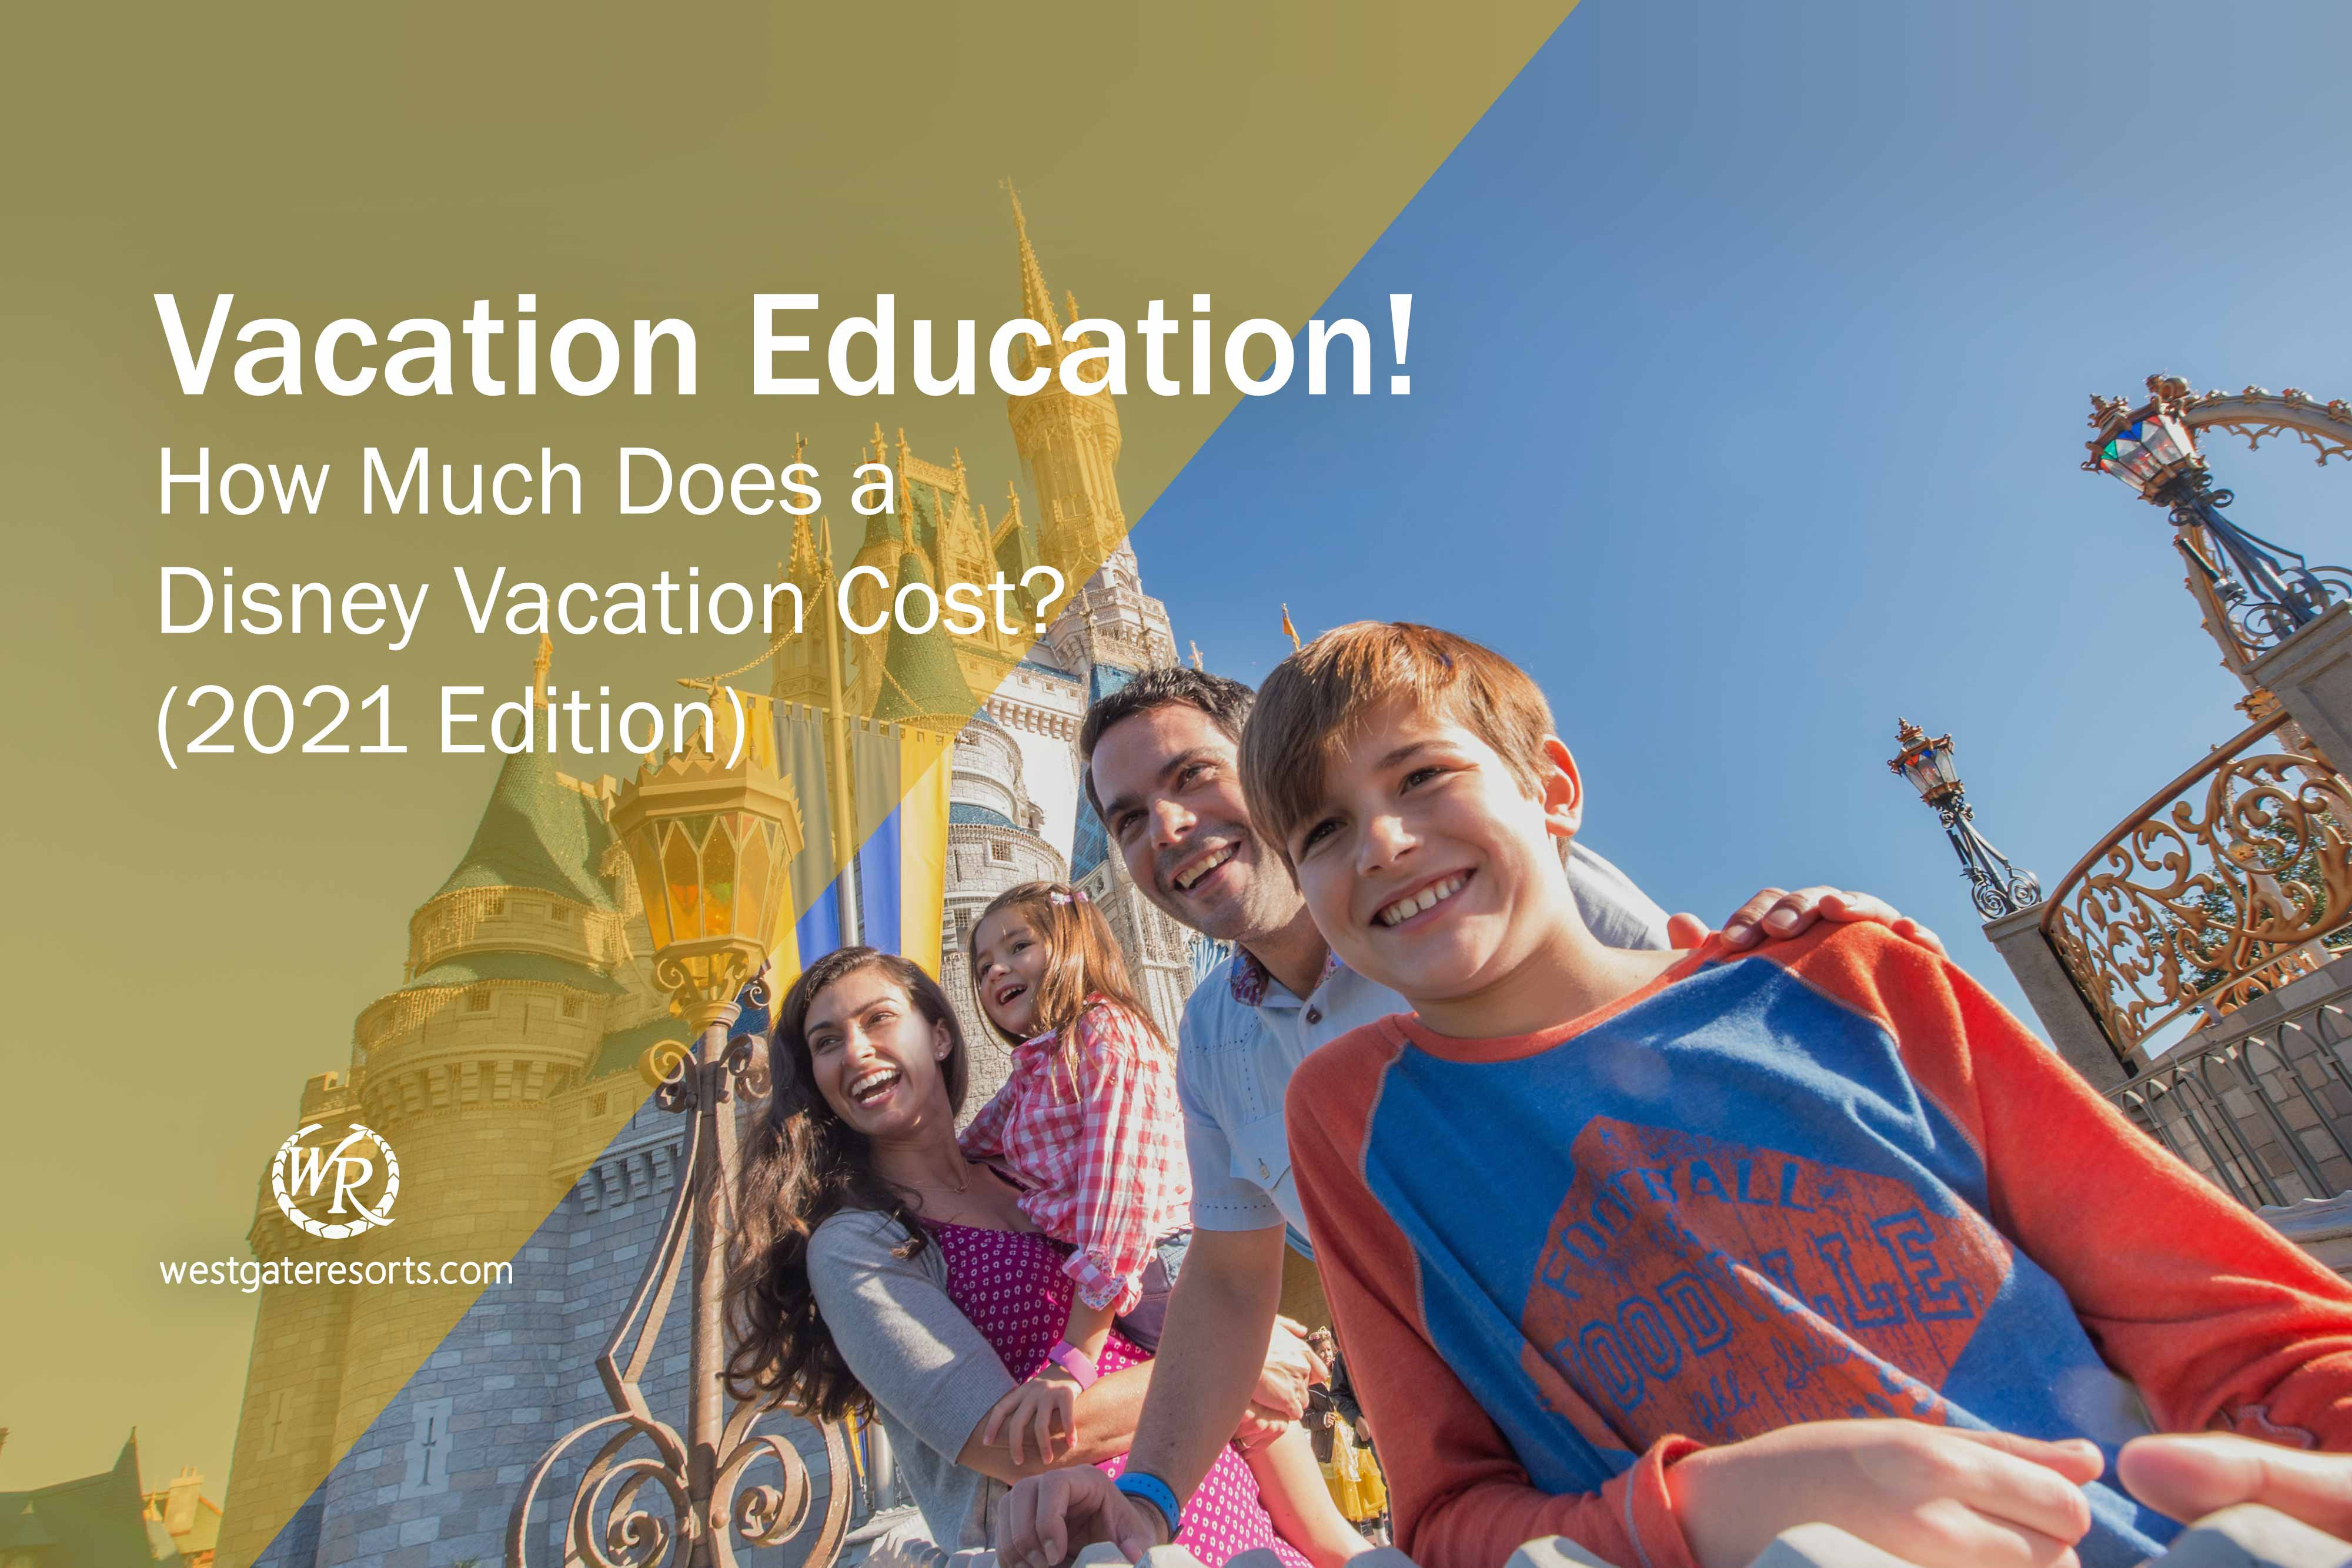 Vacation Education! How Much Does a Disney Vacation Cost (2021 Edition)?